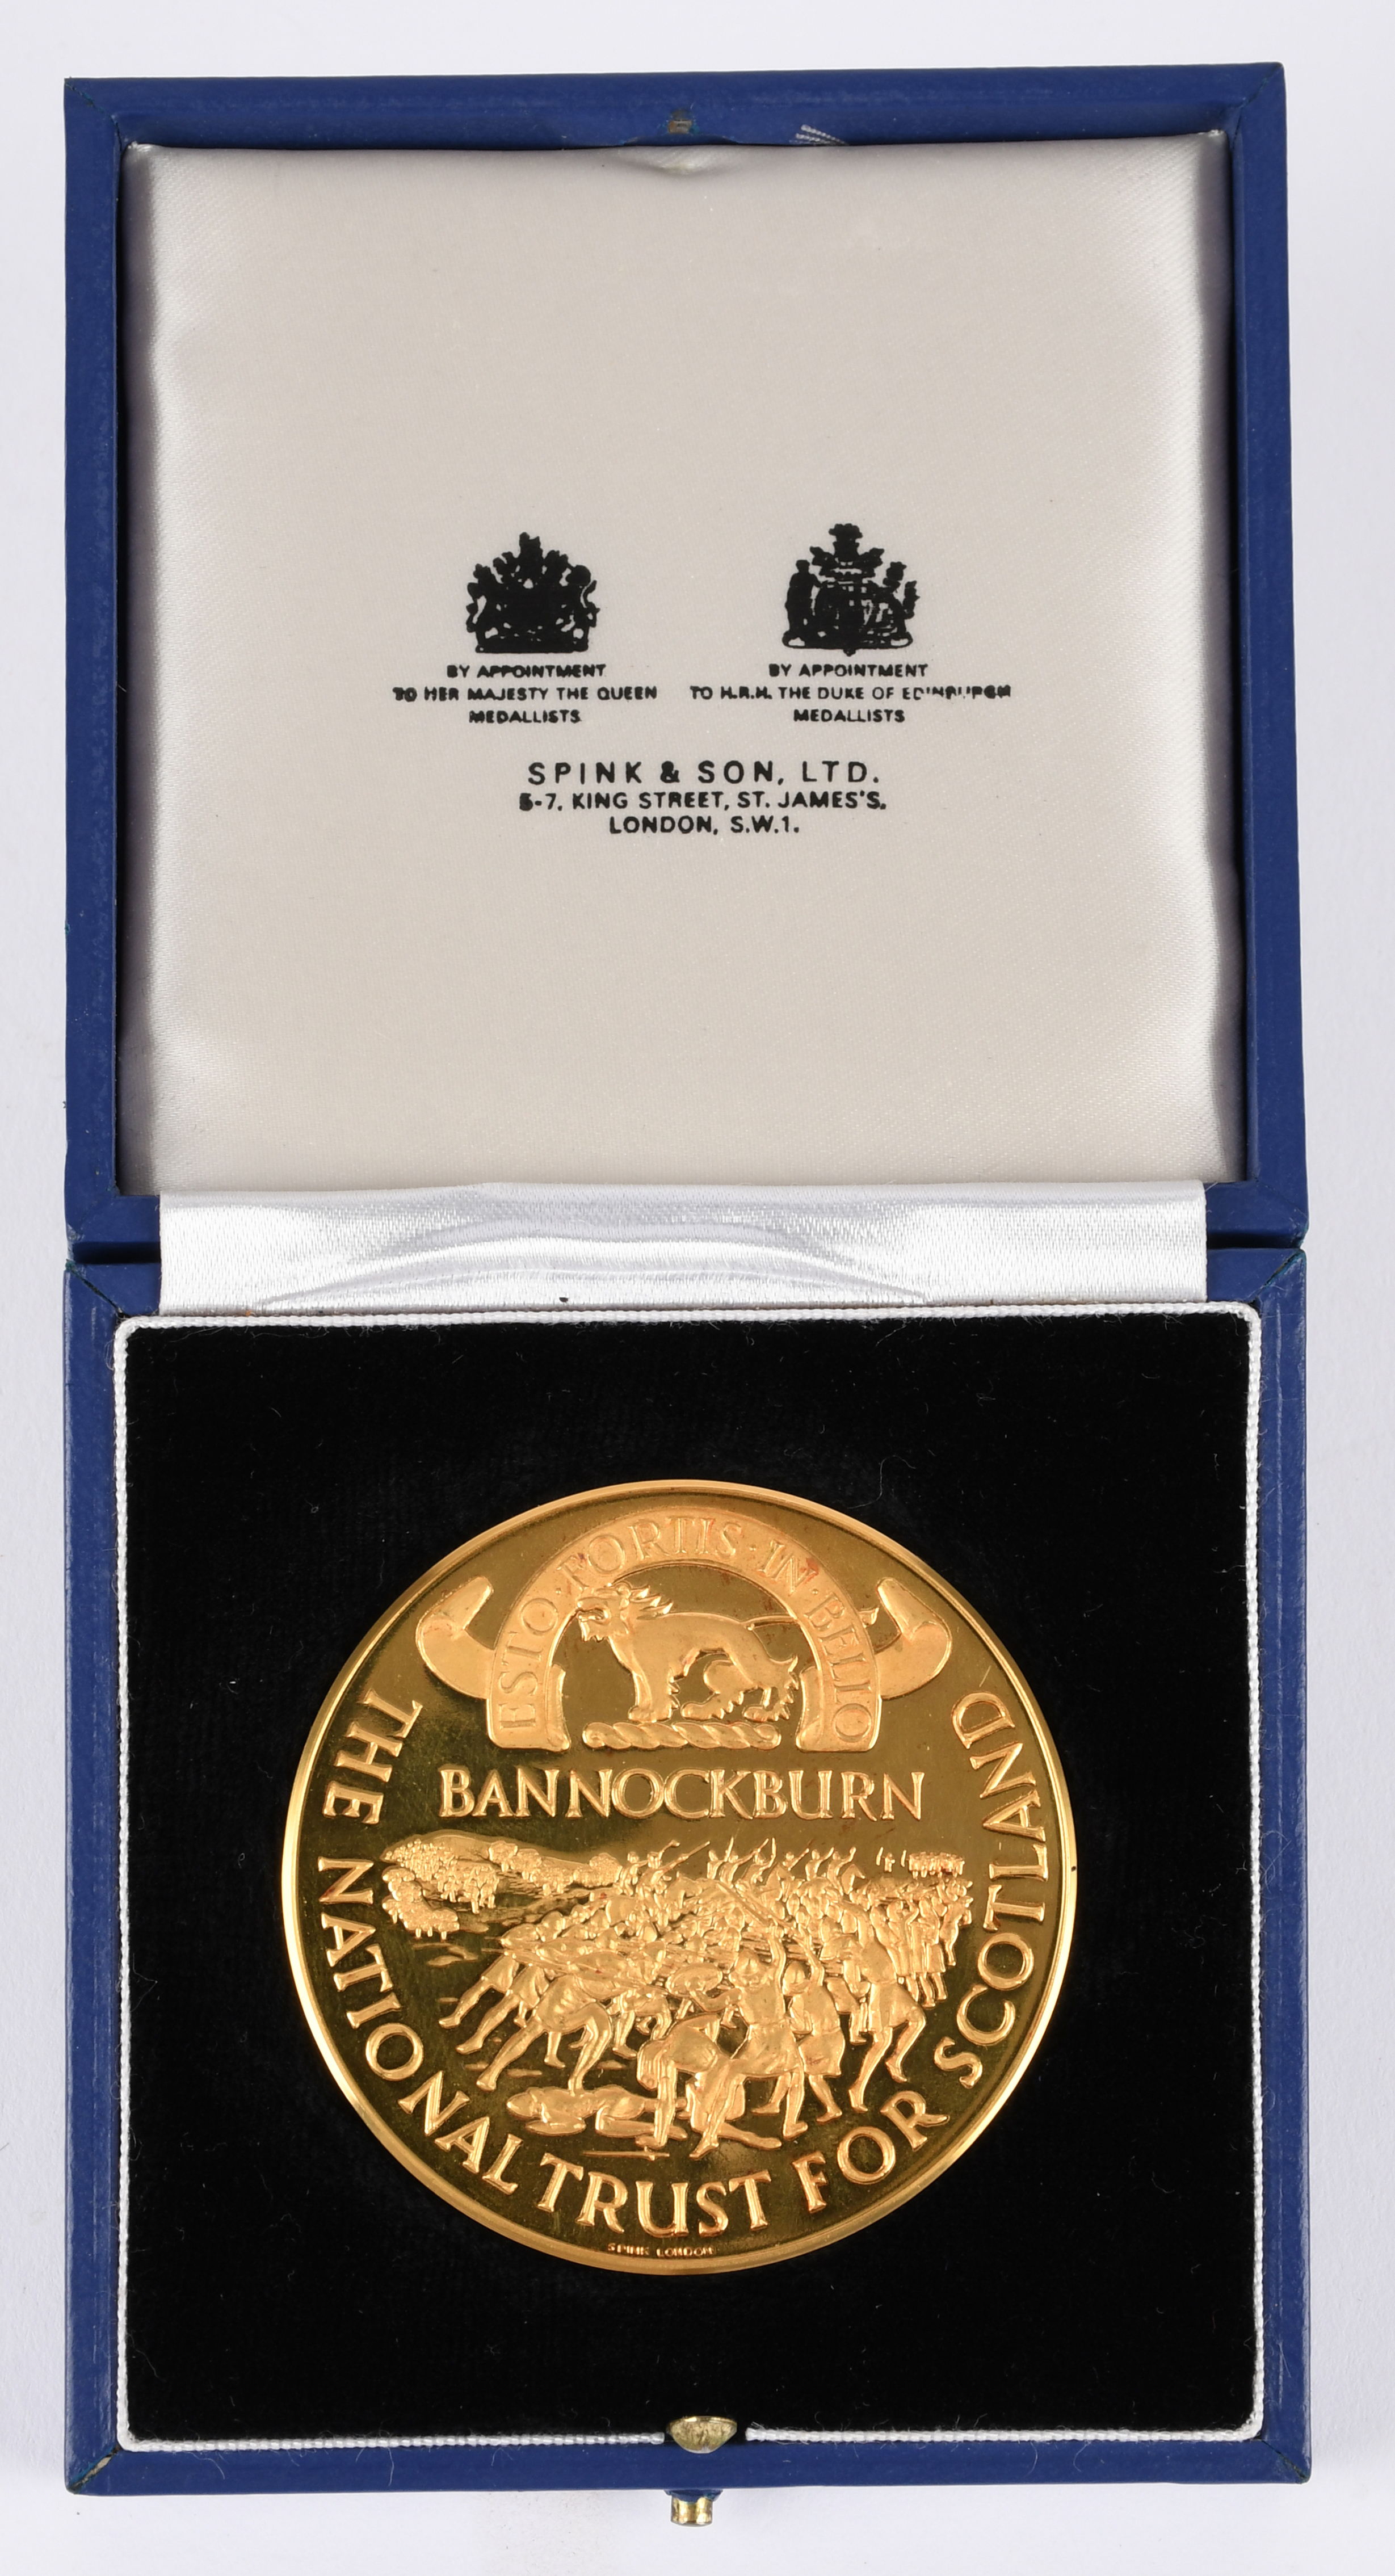 The National Trust for Scotland: Battle of Bannockburn 700th Anniversary, a 22 carat gold medal, - Image 2 of 3